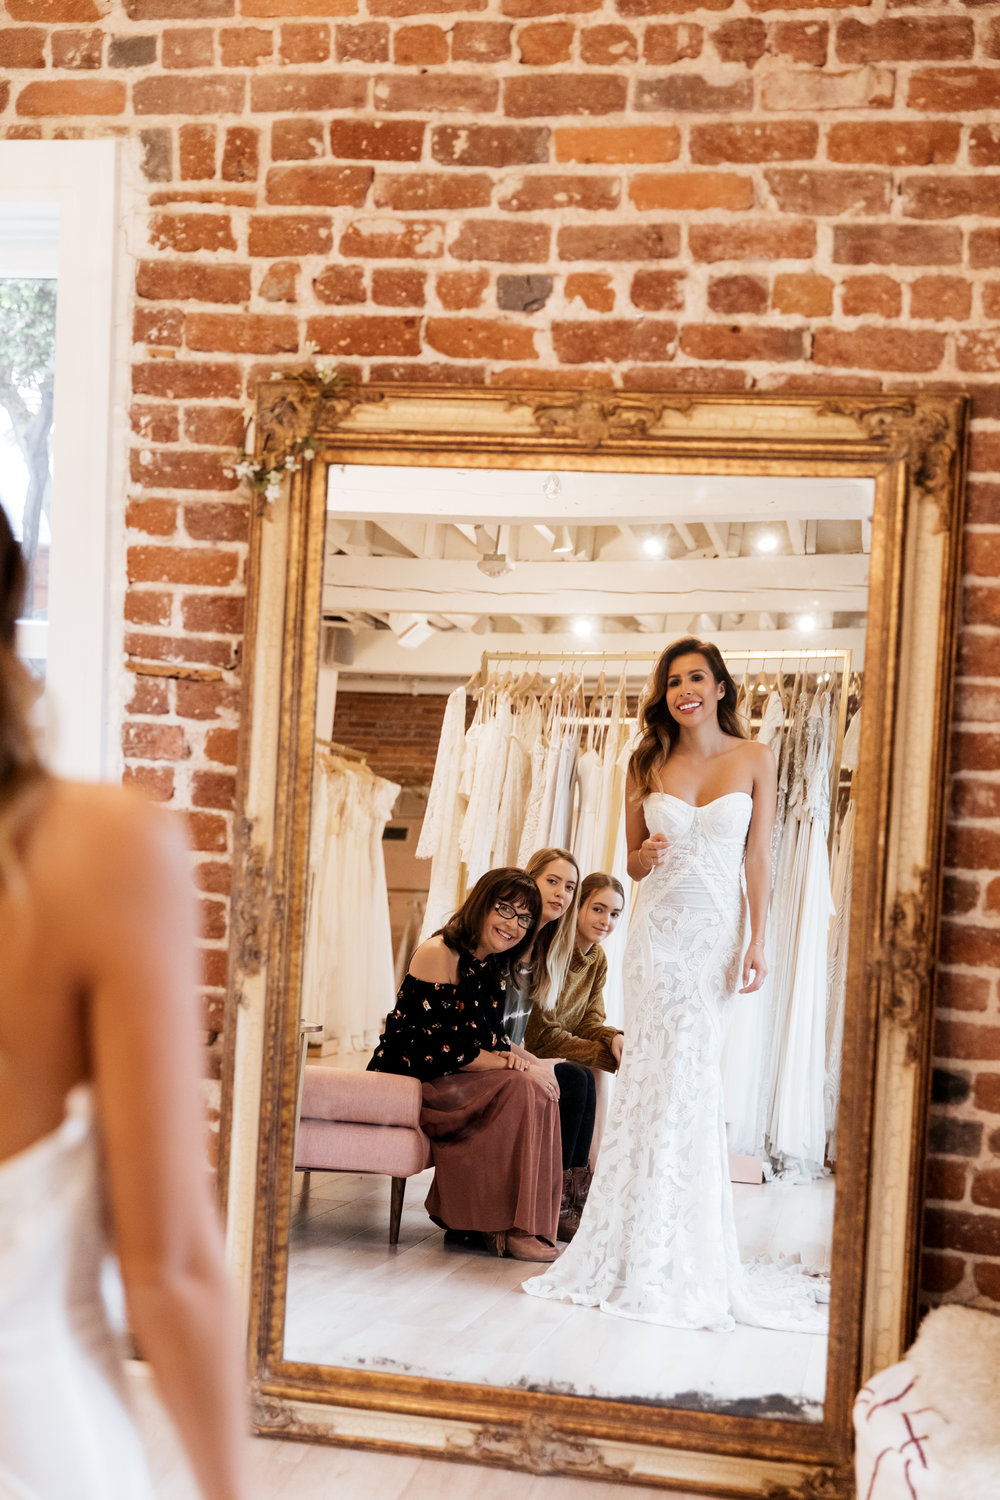 Rue De Seine Wedding Dress at Lovely Bride Los Angeles - Everyday Pursuits